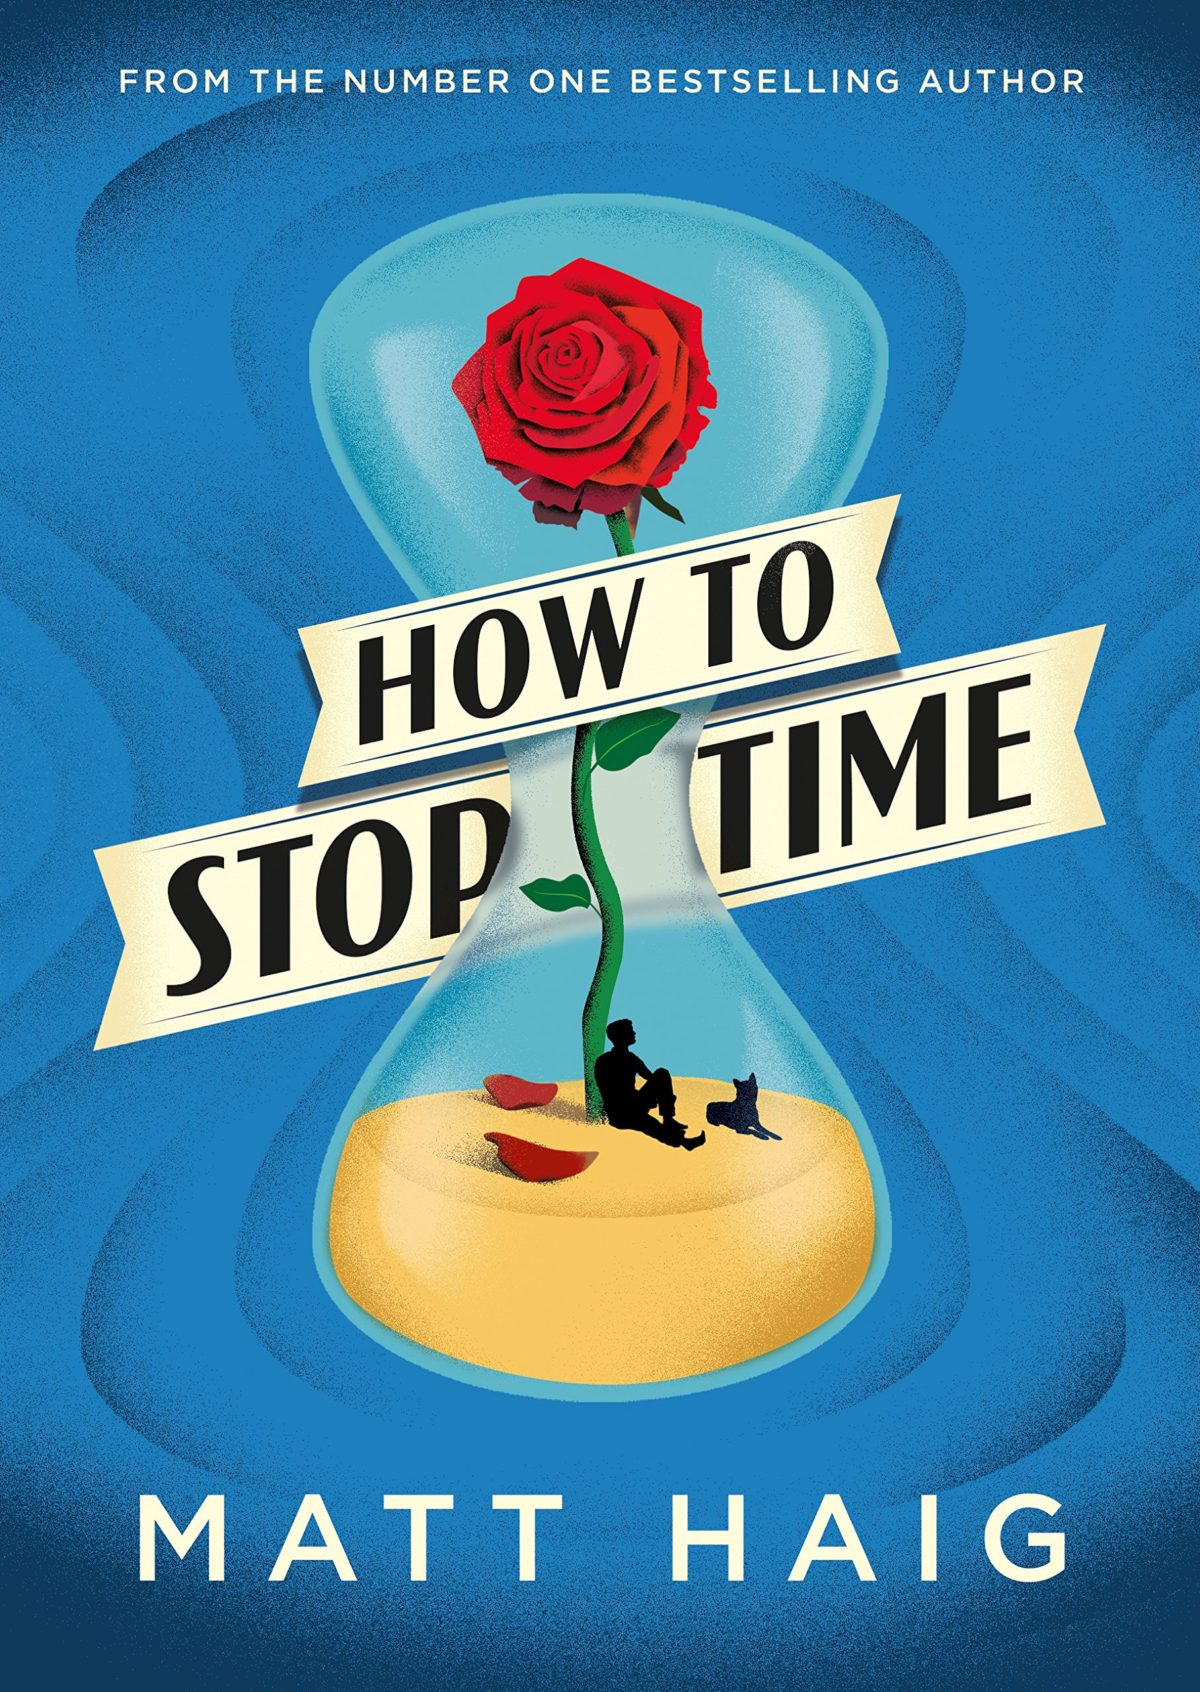 How to Stop Time de Matt Haig, ou comment accepter le temps qui passe